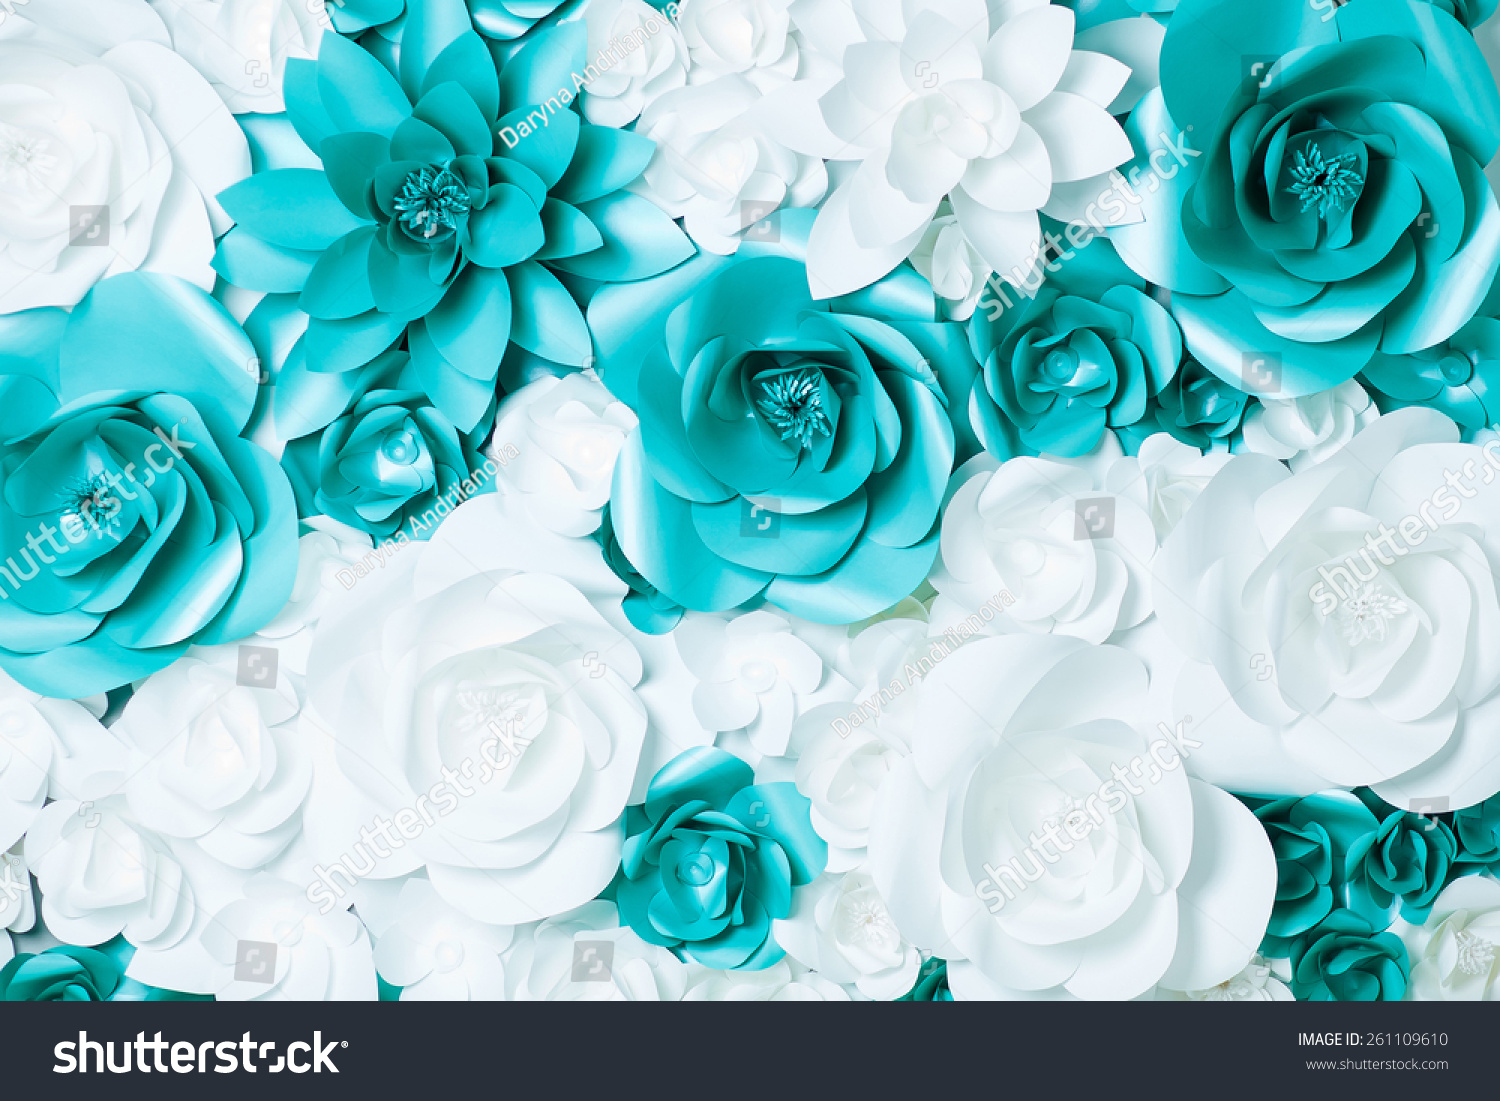 Background Turquoise White Flowers Stock Photo Edit Now 261109610